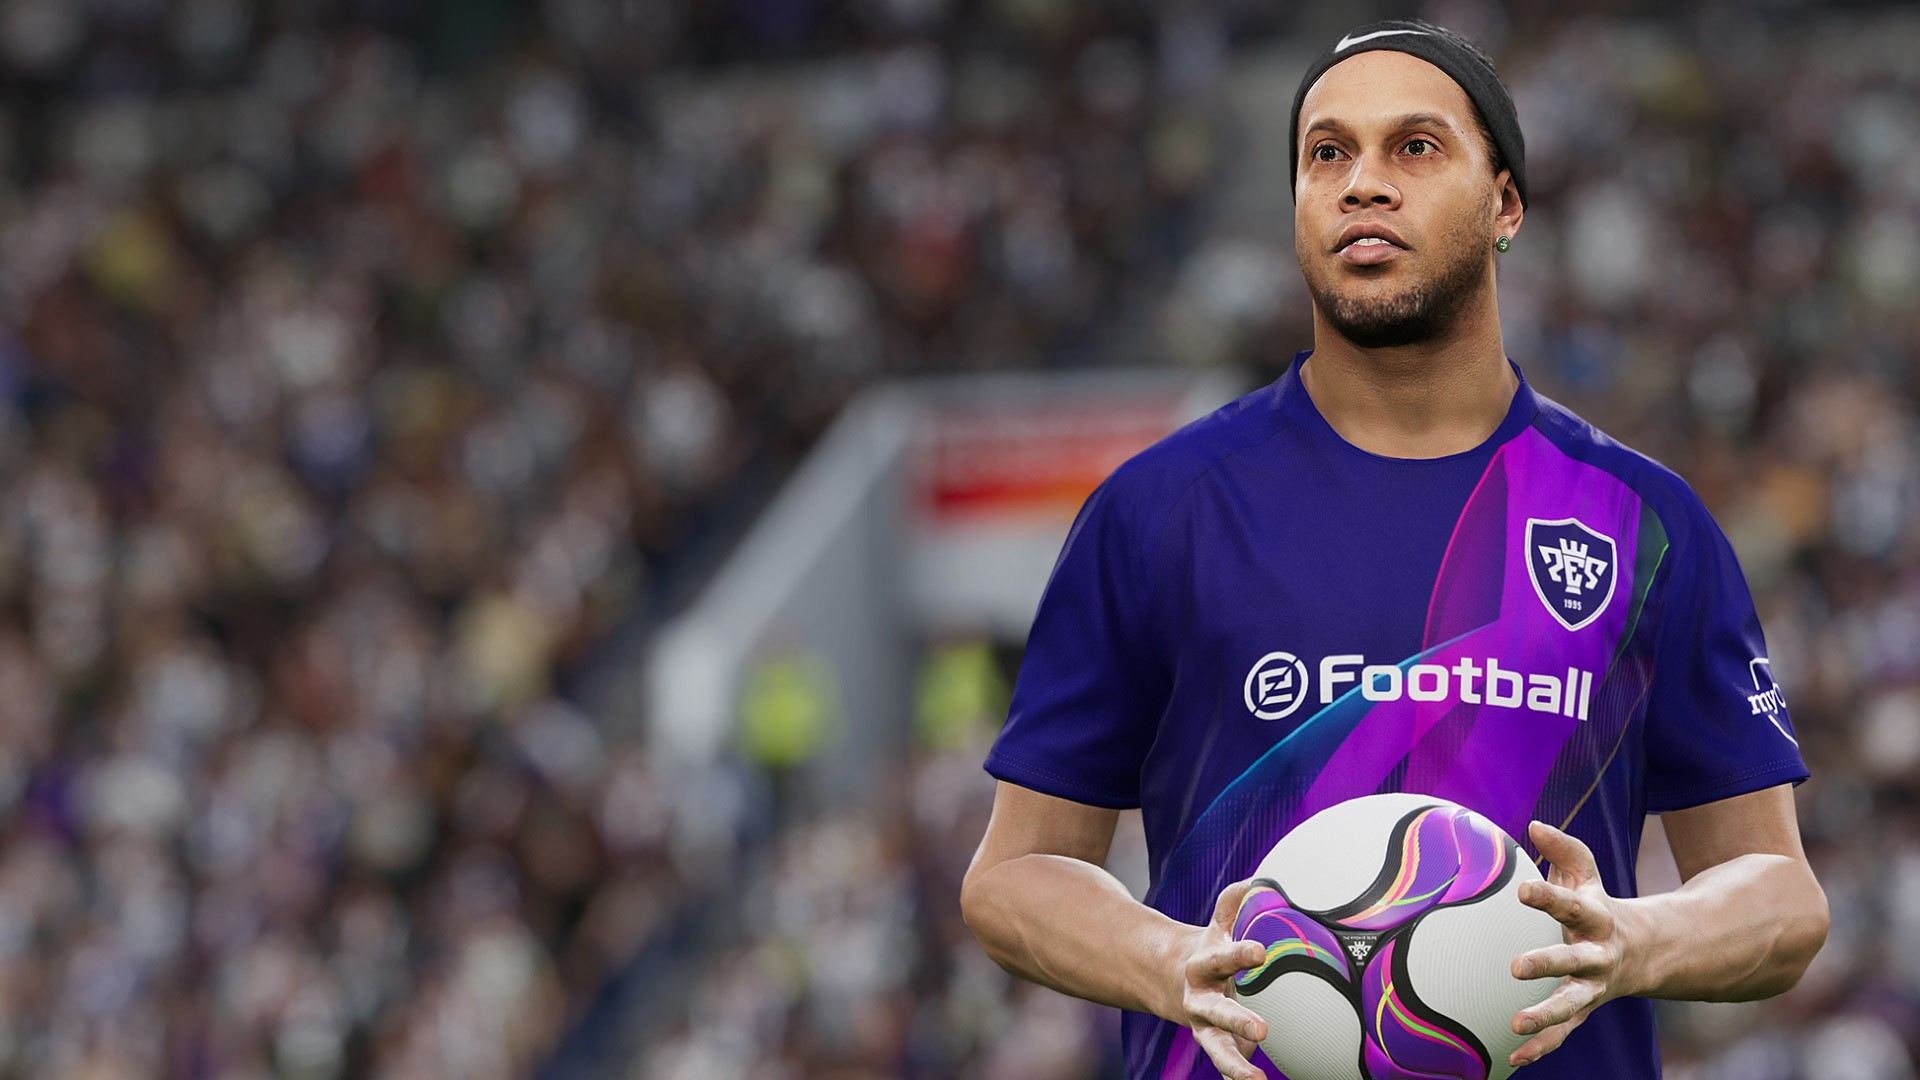 best legends in pes 2021- Ronaldinho holding the ball in PES 21 legend kit